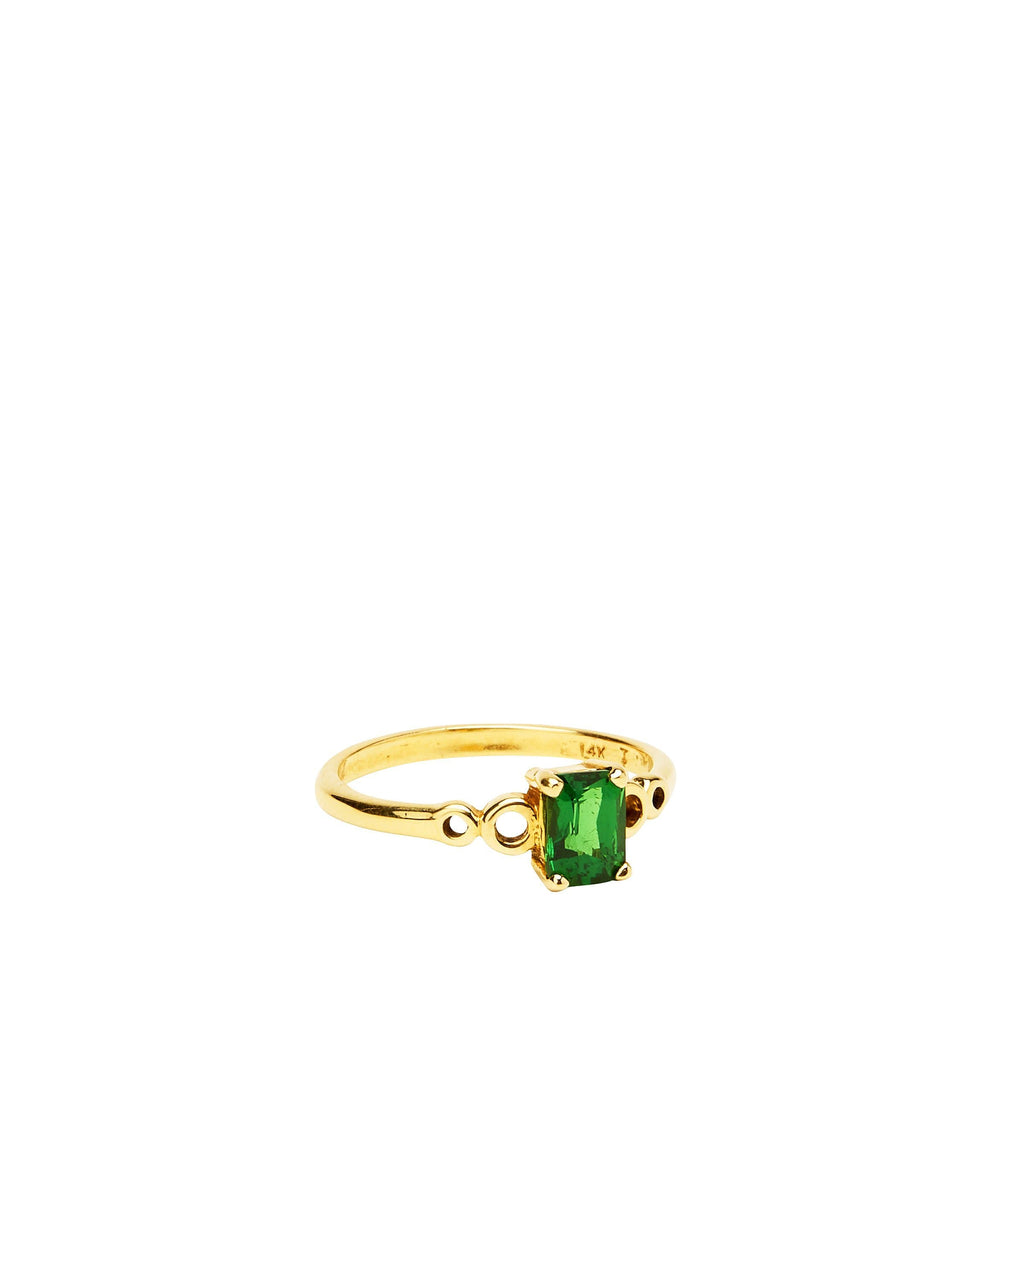 Tsavorite Garnet on 14k Yellow Gold